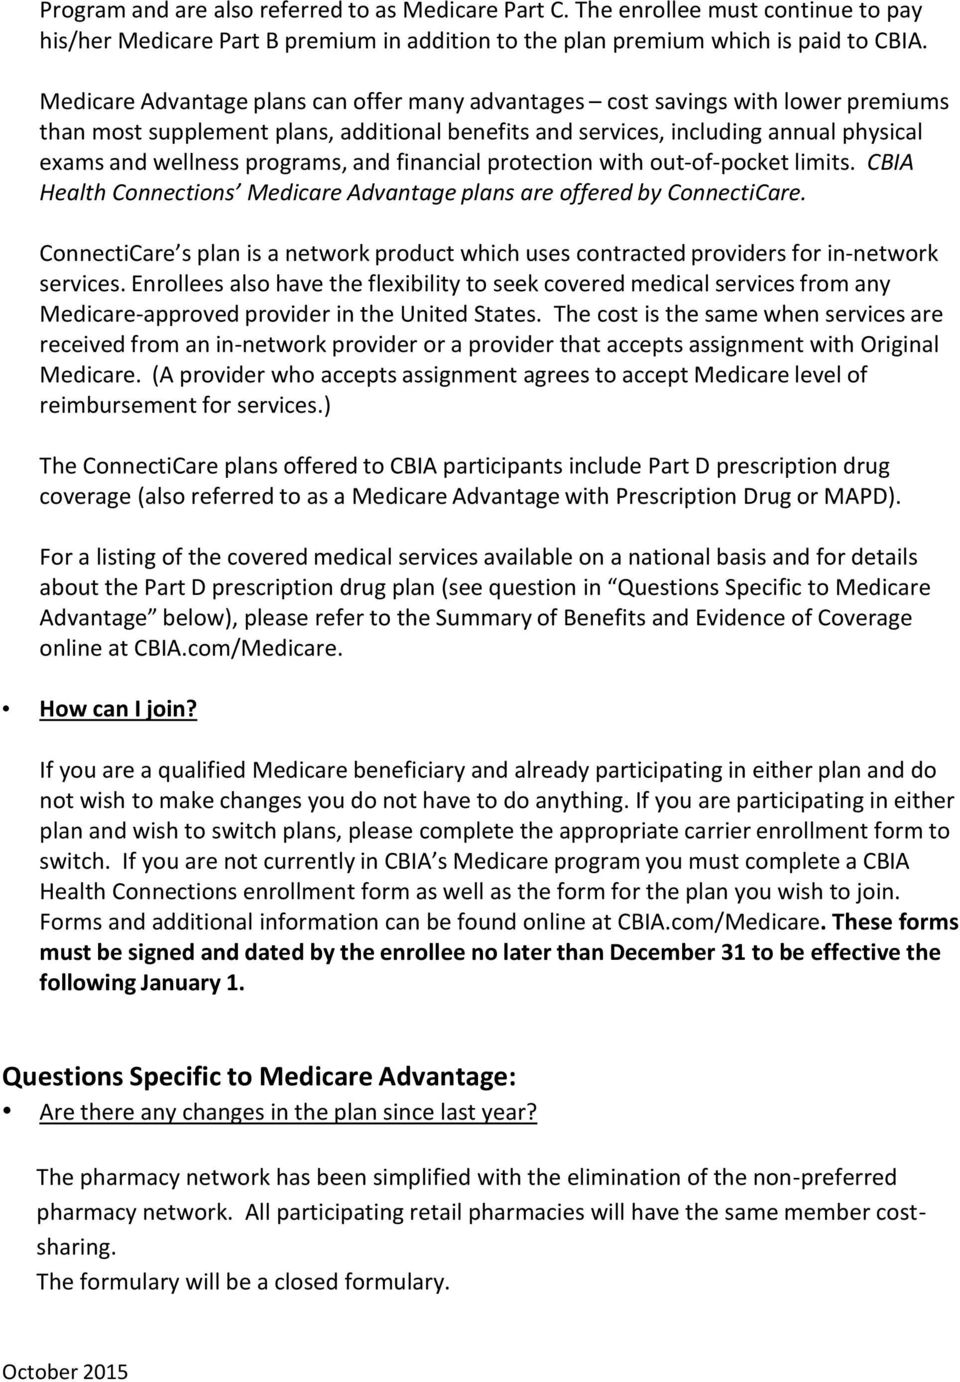 programs, and financial protection with out of pocket limits. CBIA Health Connections Medicare Advantage plans are offered by ConnectiCare.